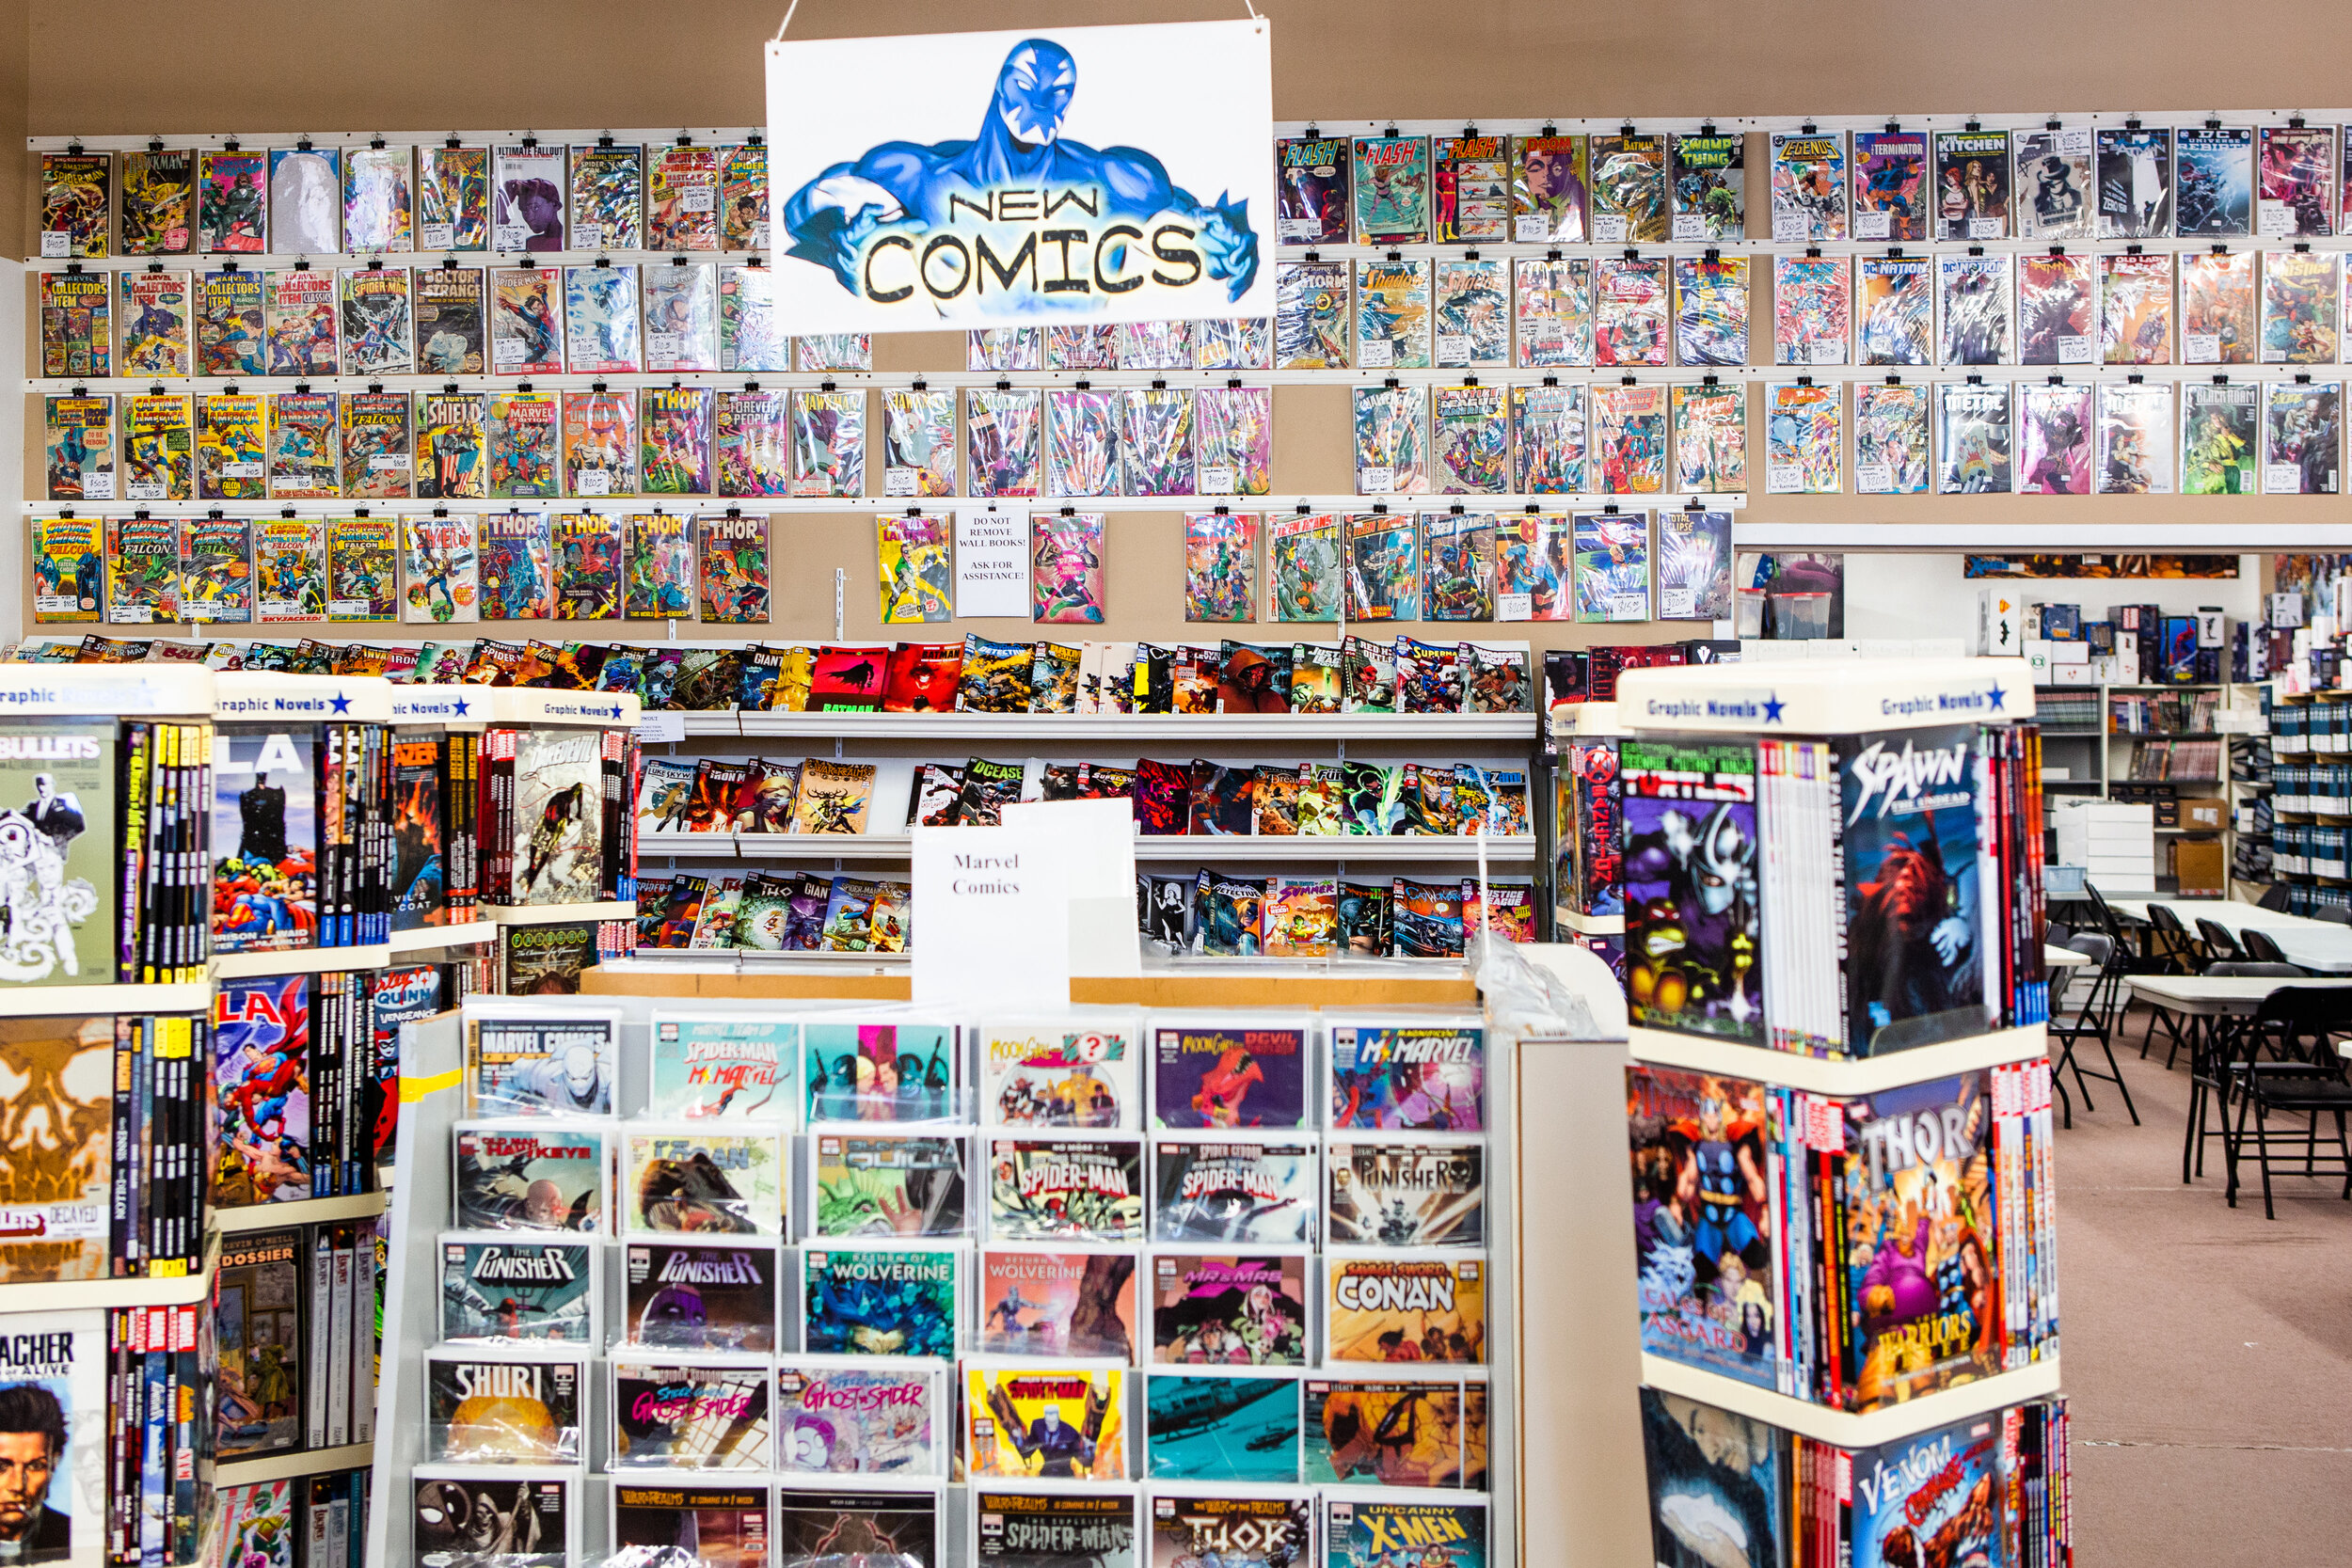 Comics - Comics are at the heart of our history and culture. We have experienced staff with a wealth of comic knowledge to offer. Our pull list includes 100's of loyal customers that have chosen Comic Connection as their comic book provider. Pay us a visit and find out why we are the best comic book store in the GTA.